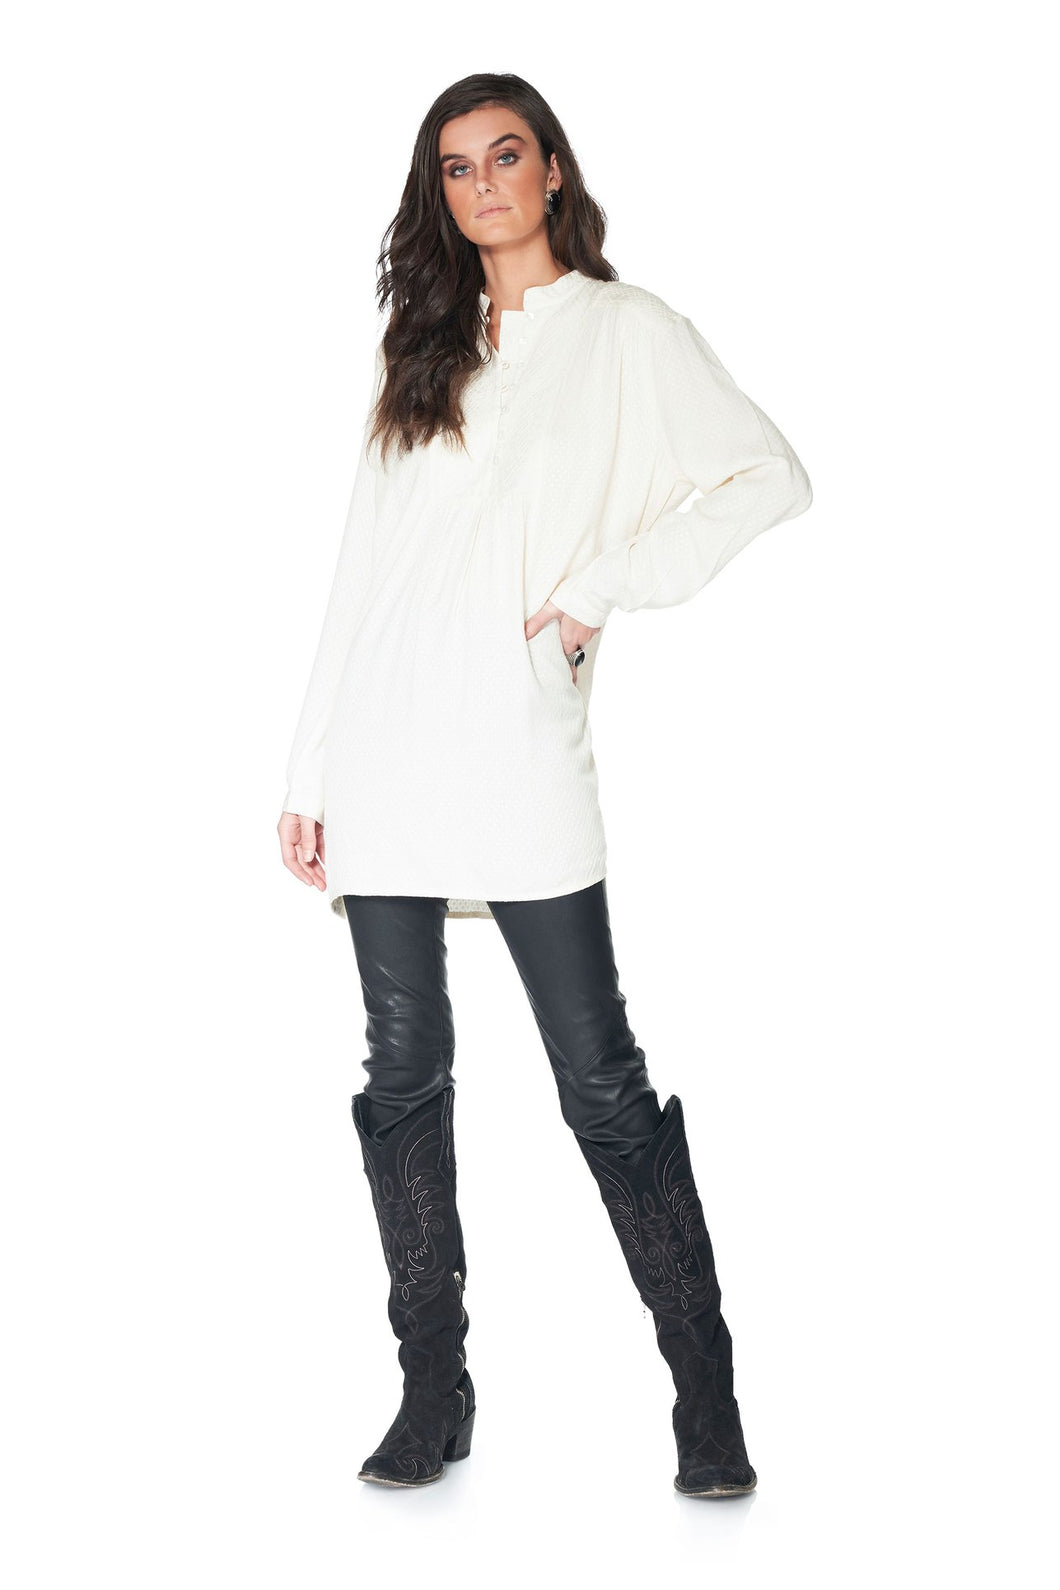 DDR Robles White Tonal Embrodiery Tunic at 6Whiskey six whisky Maria Spring T3414